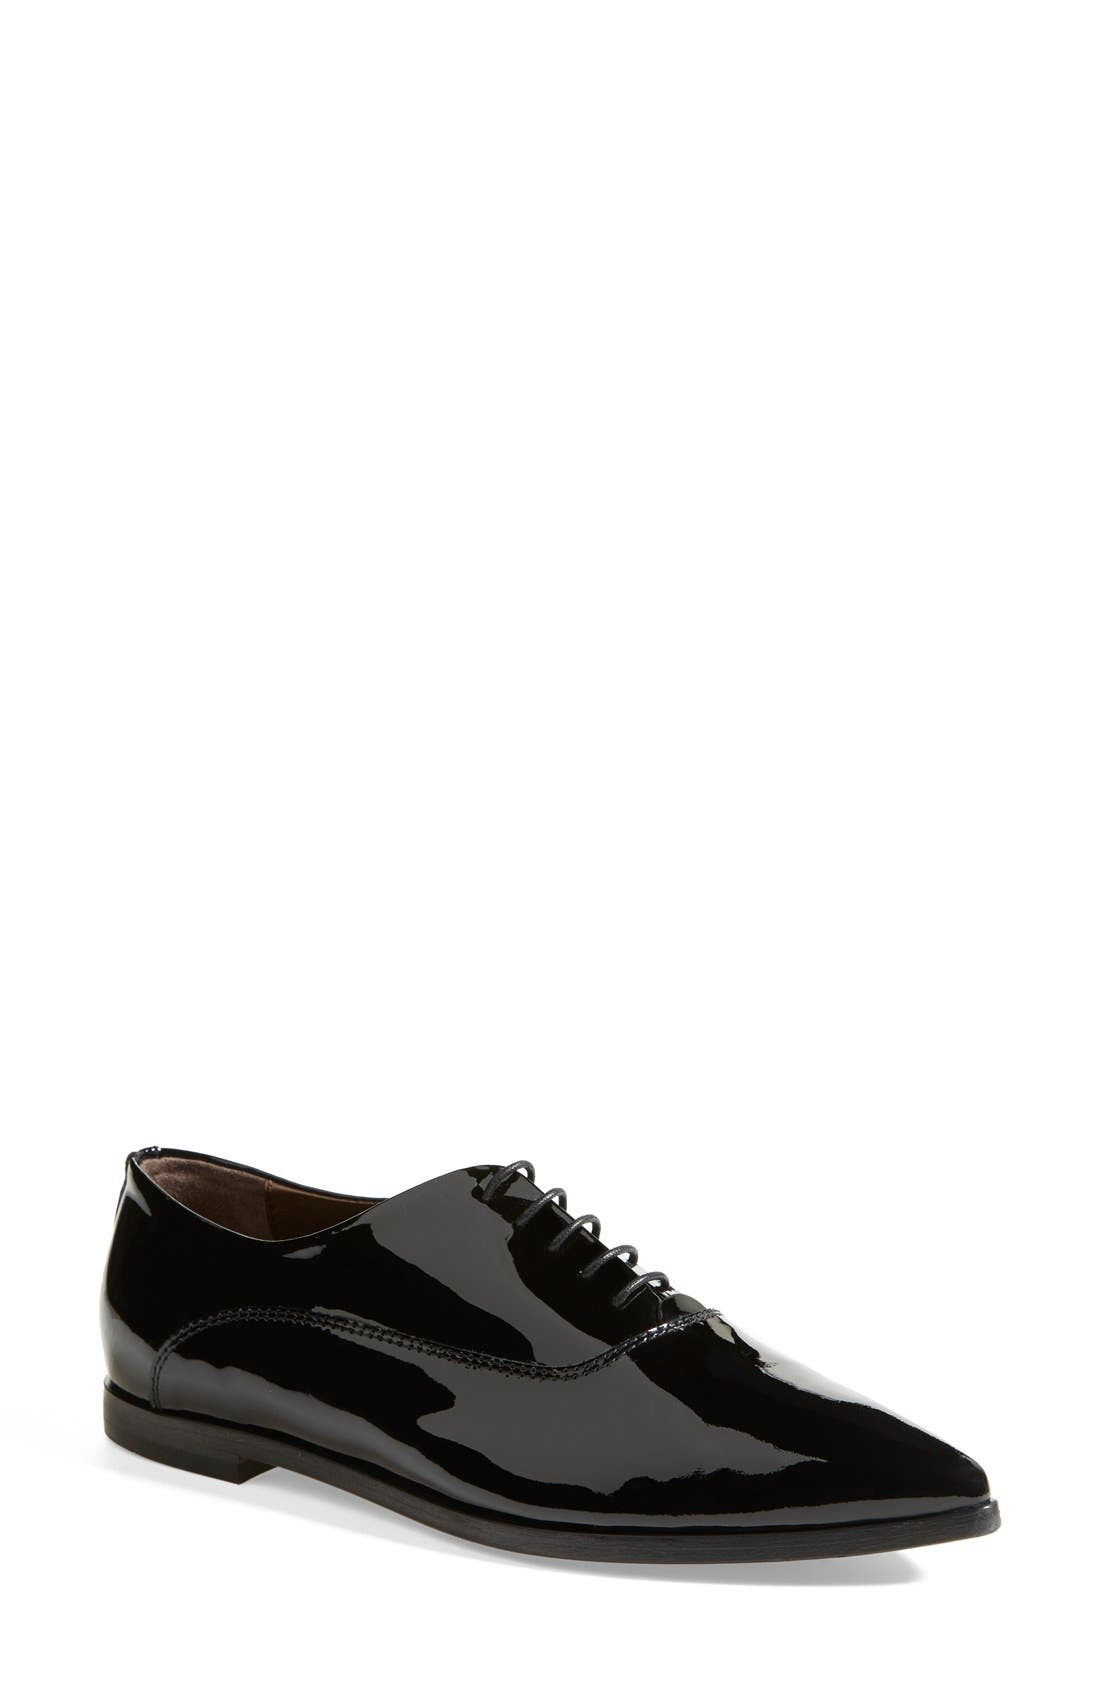 AGL Attilio Giusti Leombruni Patent Leather Pointy Toe Oxford, Main, color, 001